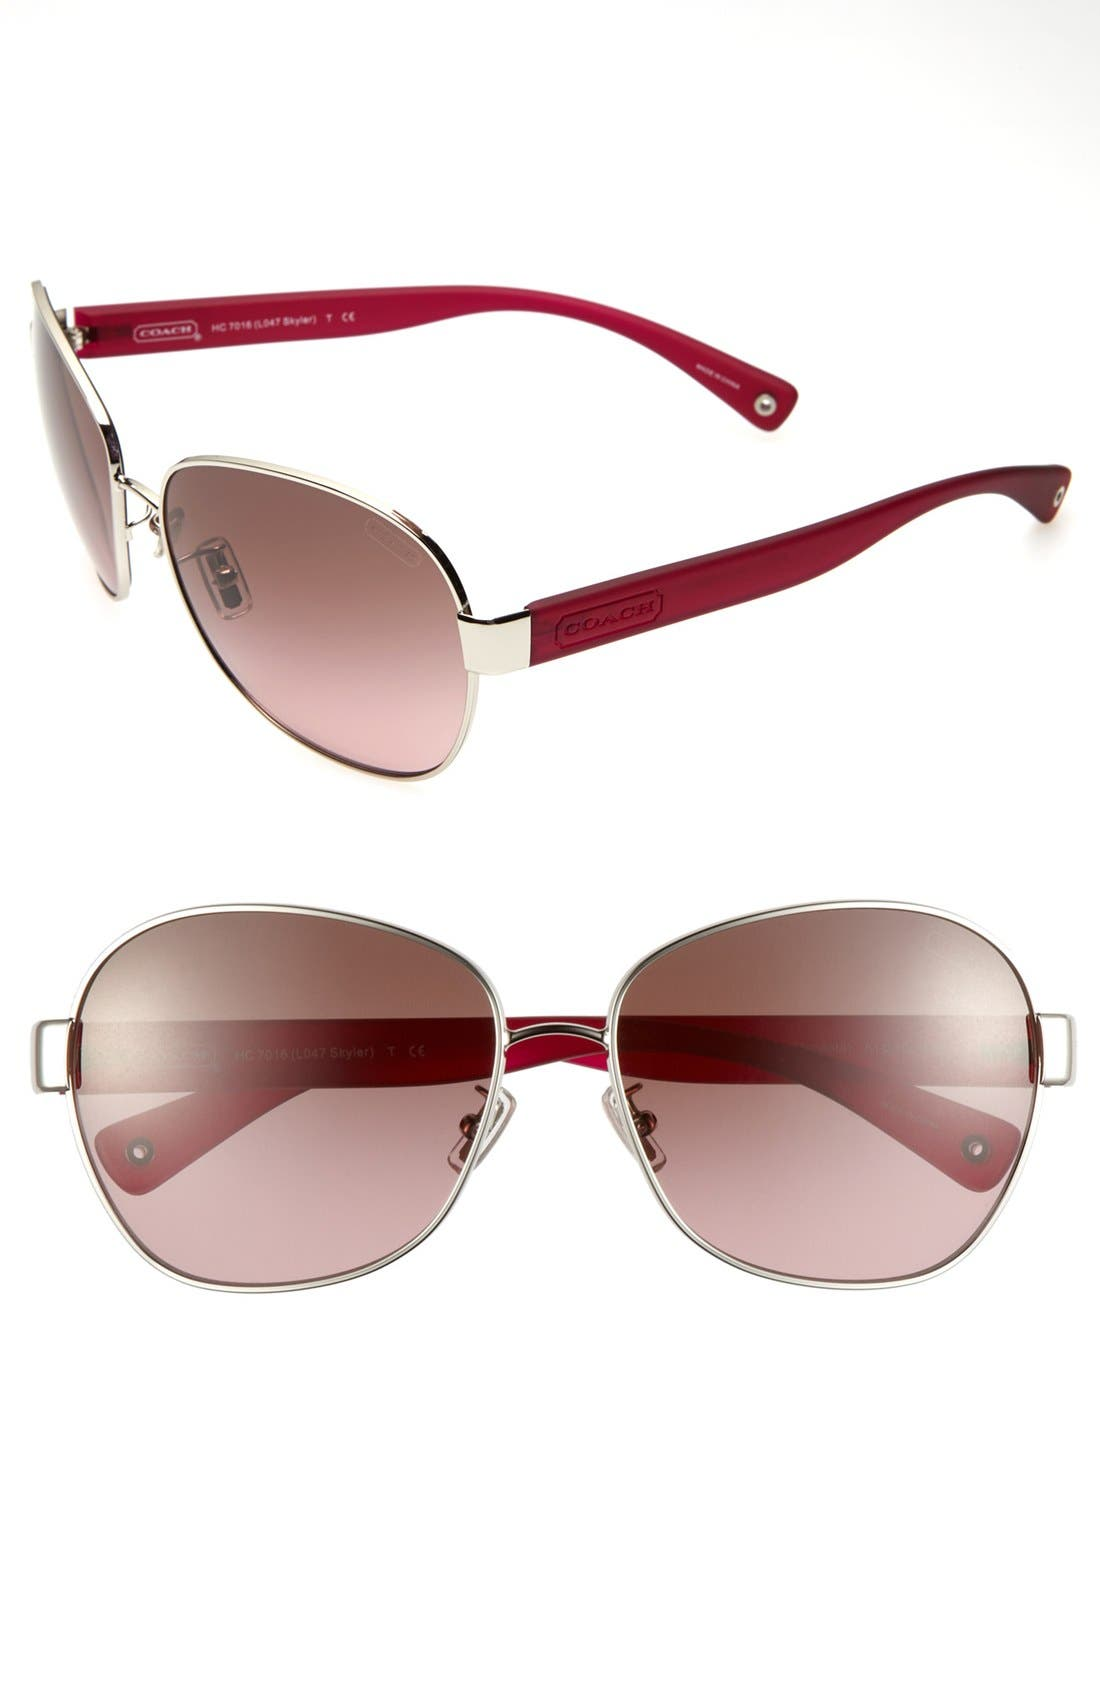 Alternate Image 1 Selected - COACH 'Skyler' 61mm Sunglasses